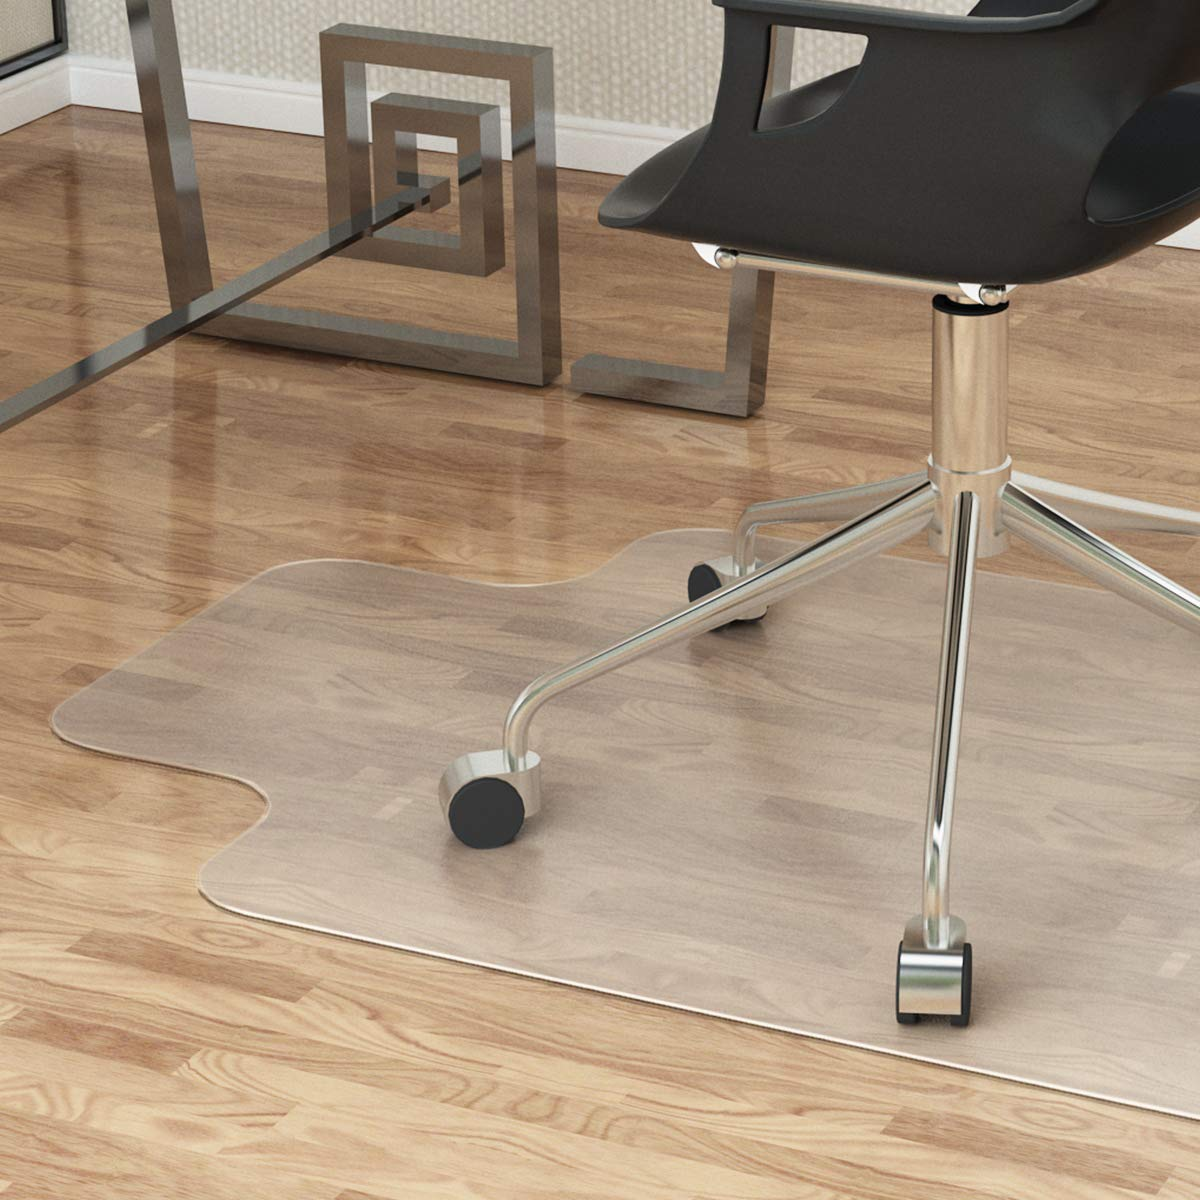 LANGRIA Large Office Desk Chair Mat with Lip for Hardwood Floors Eco-Friendly PVC Material BPA Free for Home and Office 36 x 48 Clear Hard Floor Protector with Non-Studded Bottom